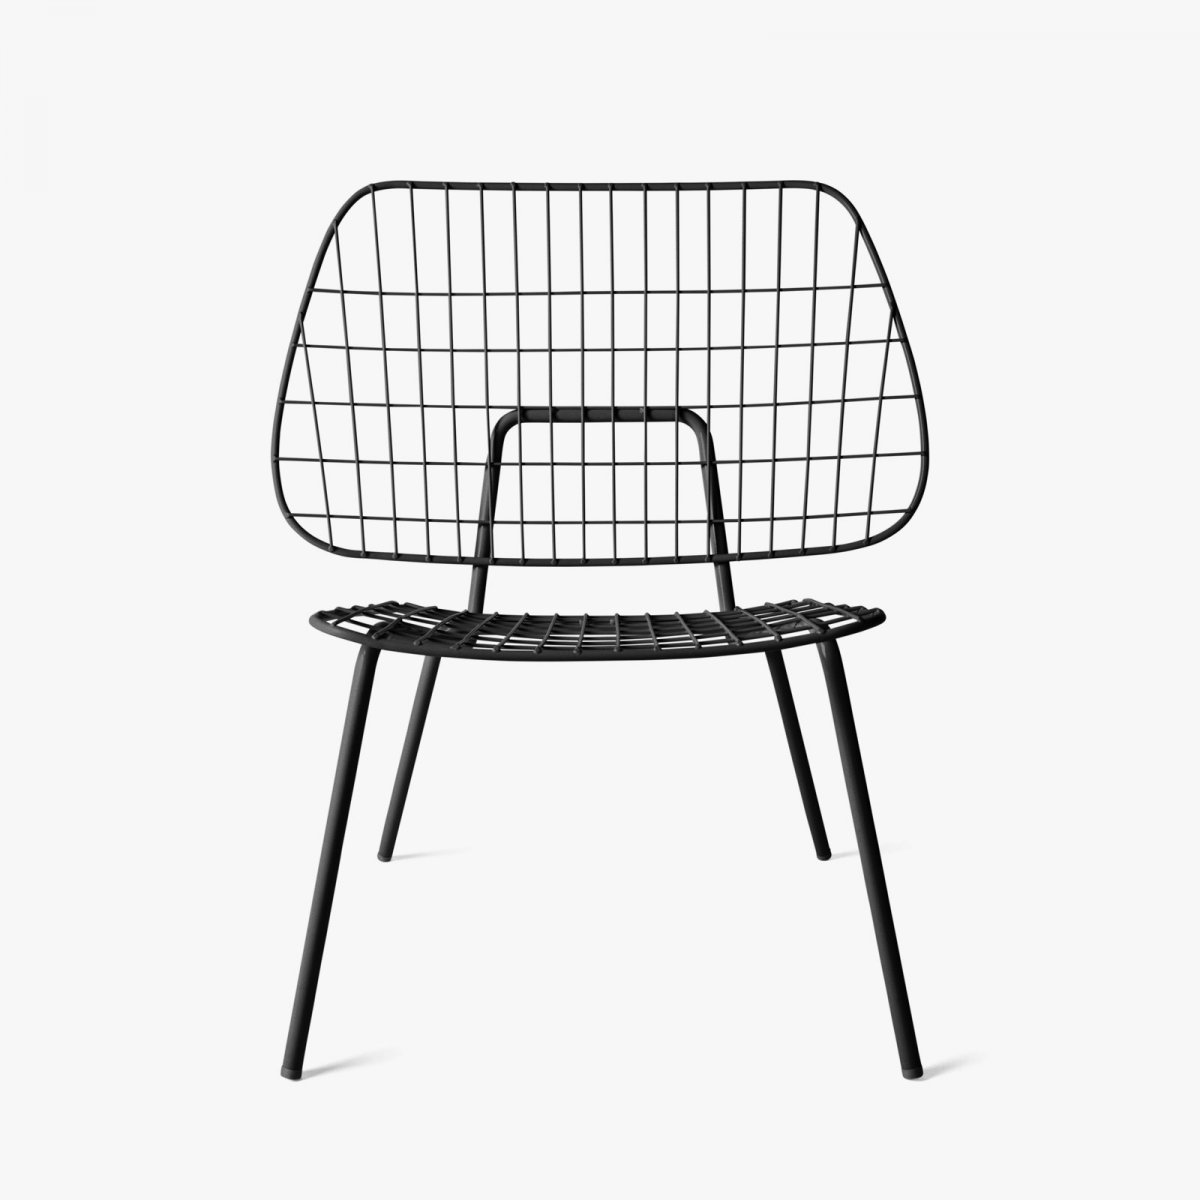 WM String Lounge Chair, black, front view.